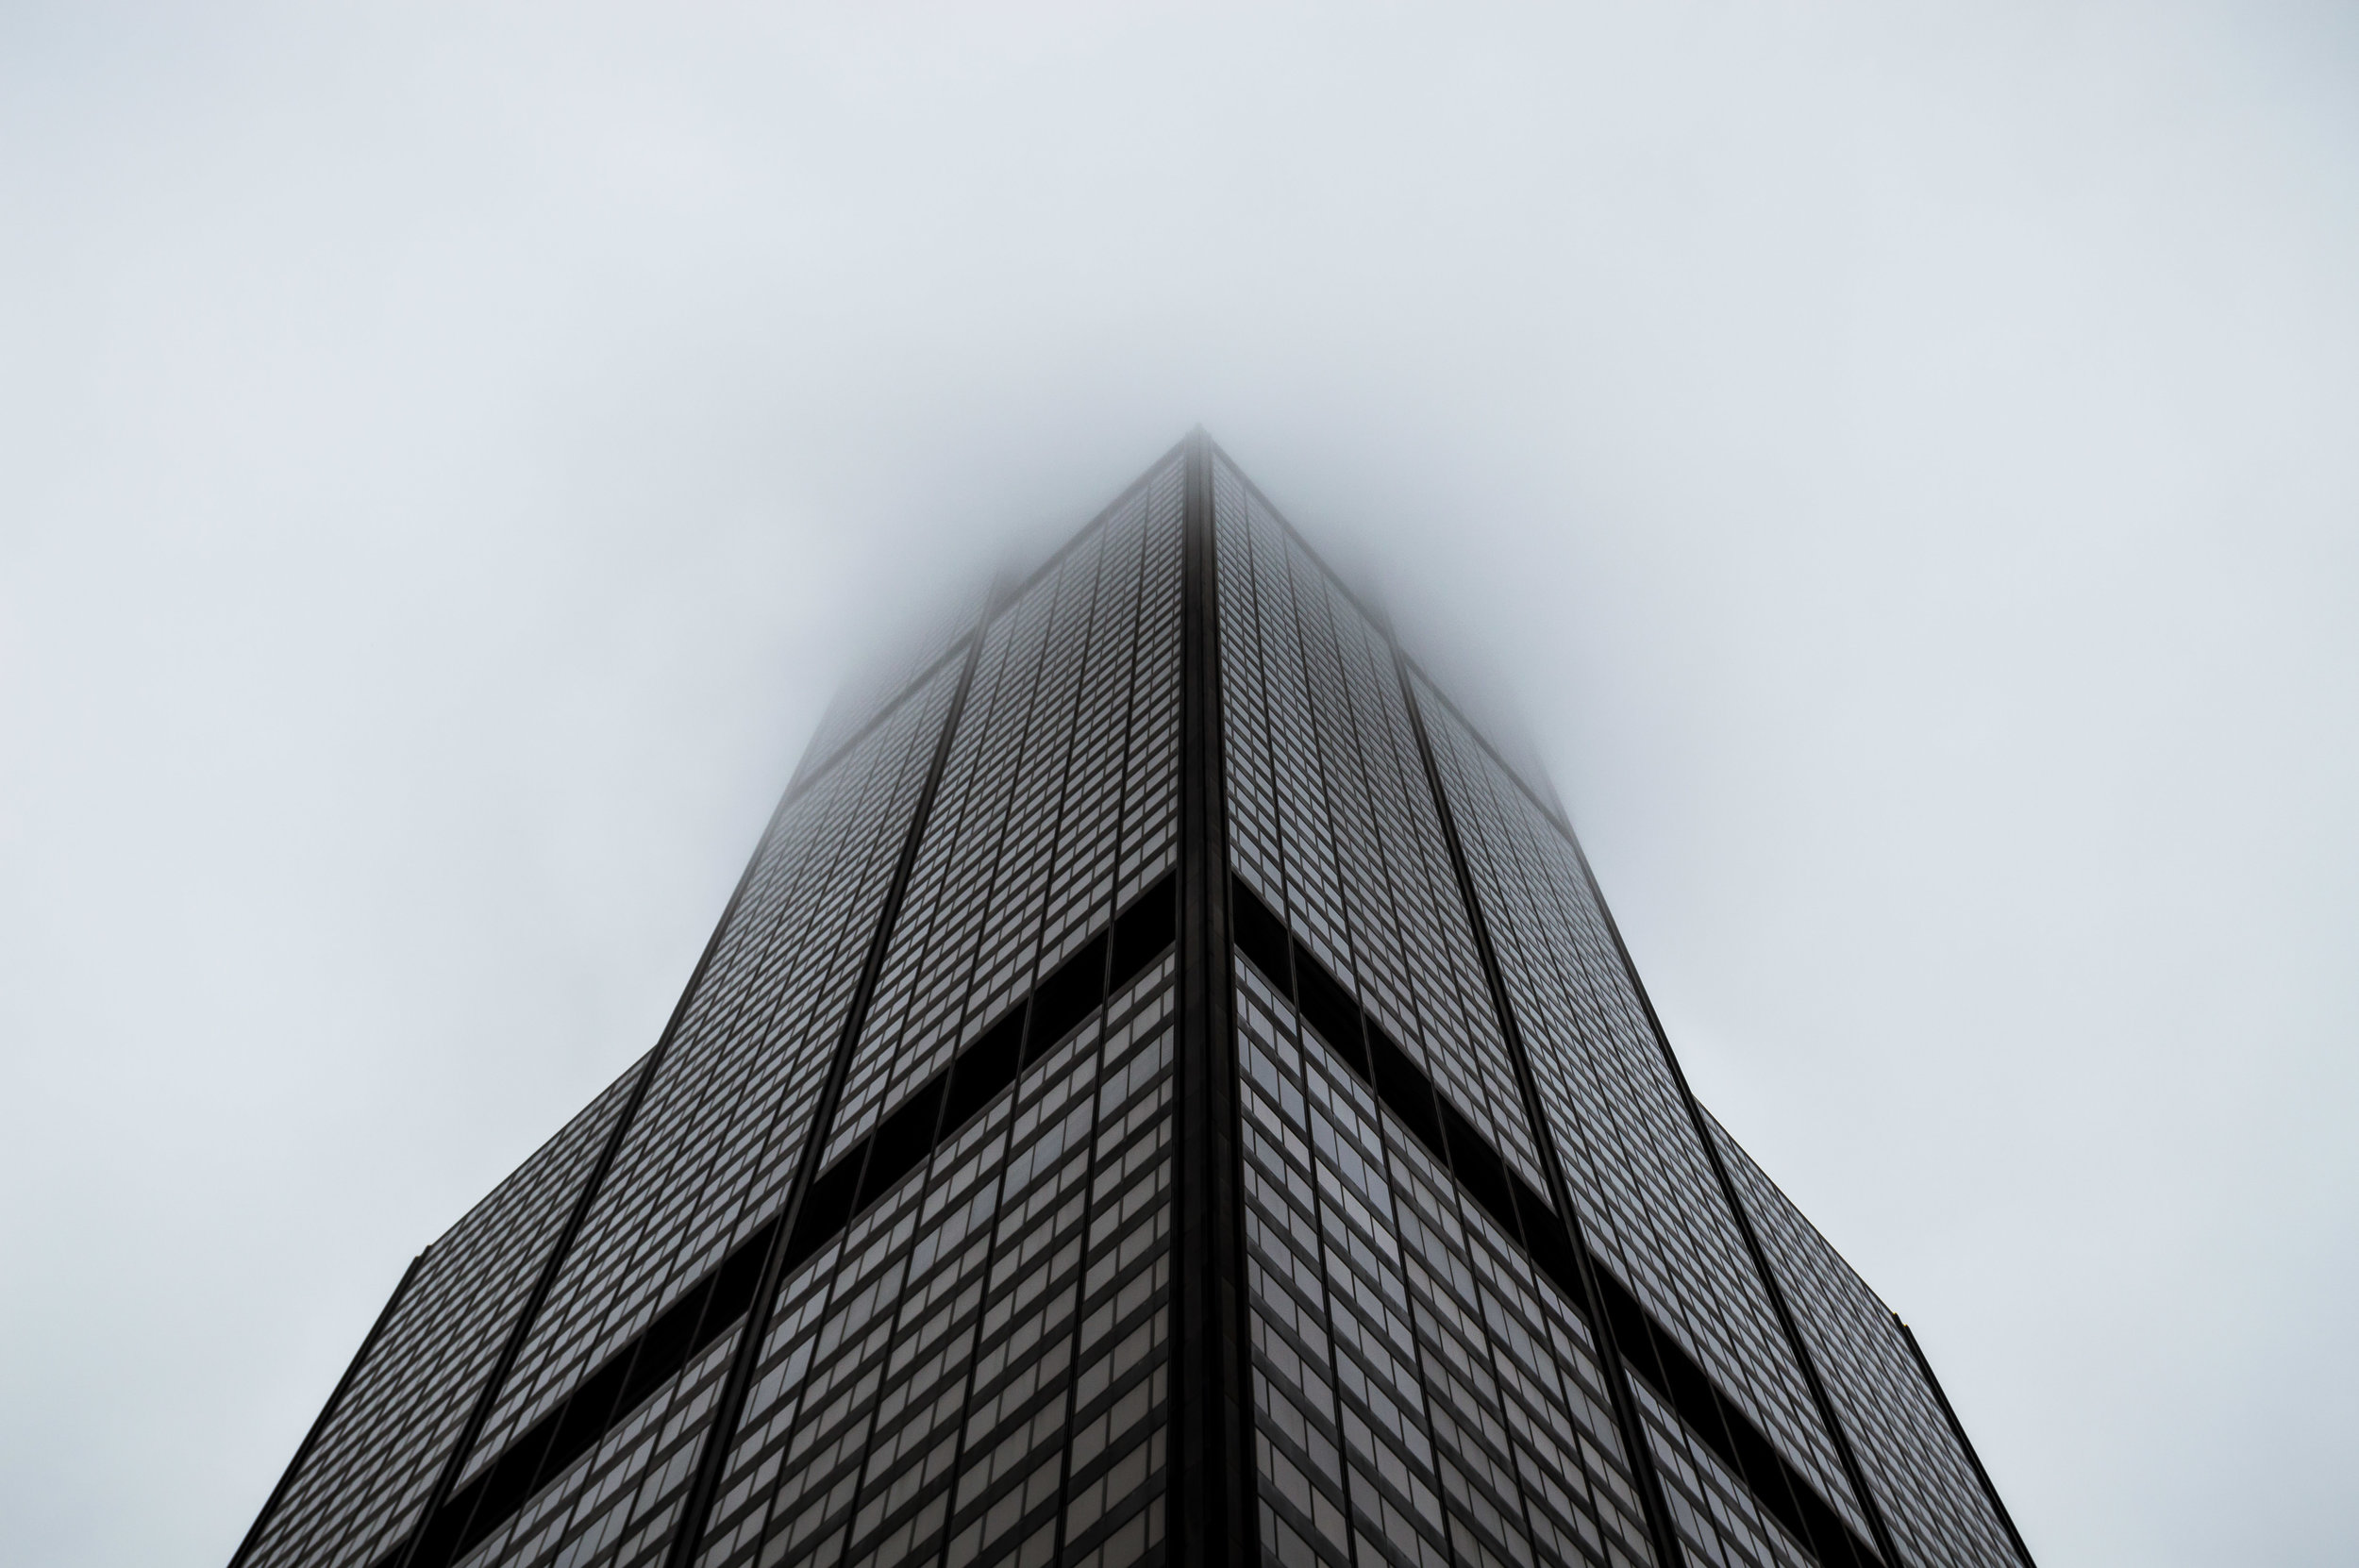 Chicago Willis Tower Sears Tower Cloudy Reflection City Illinois